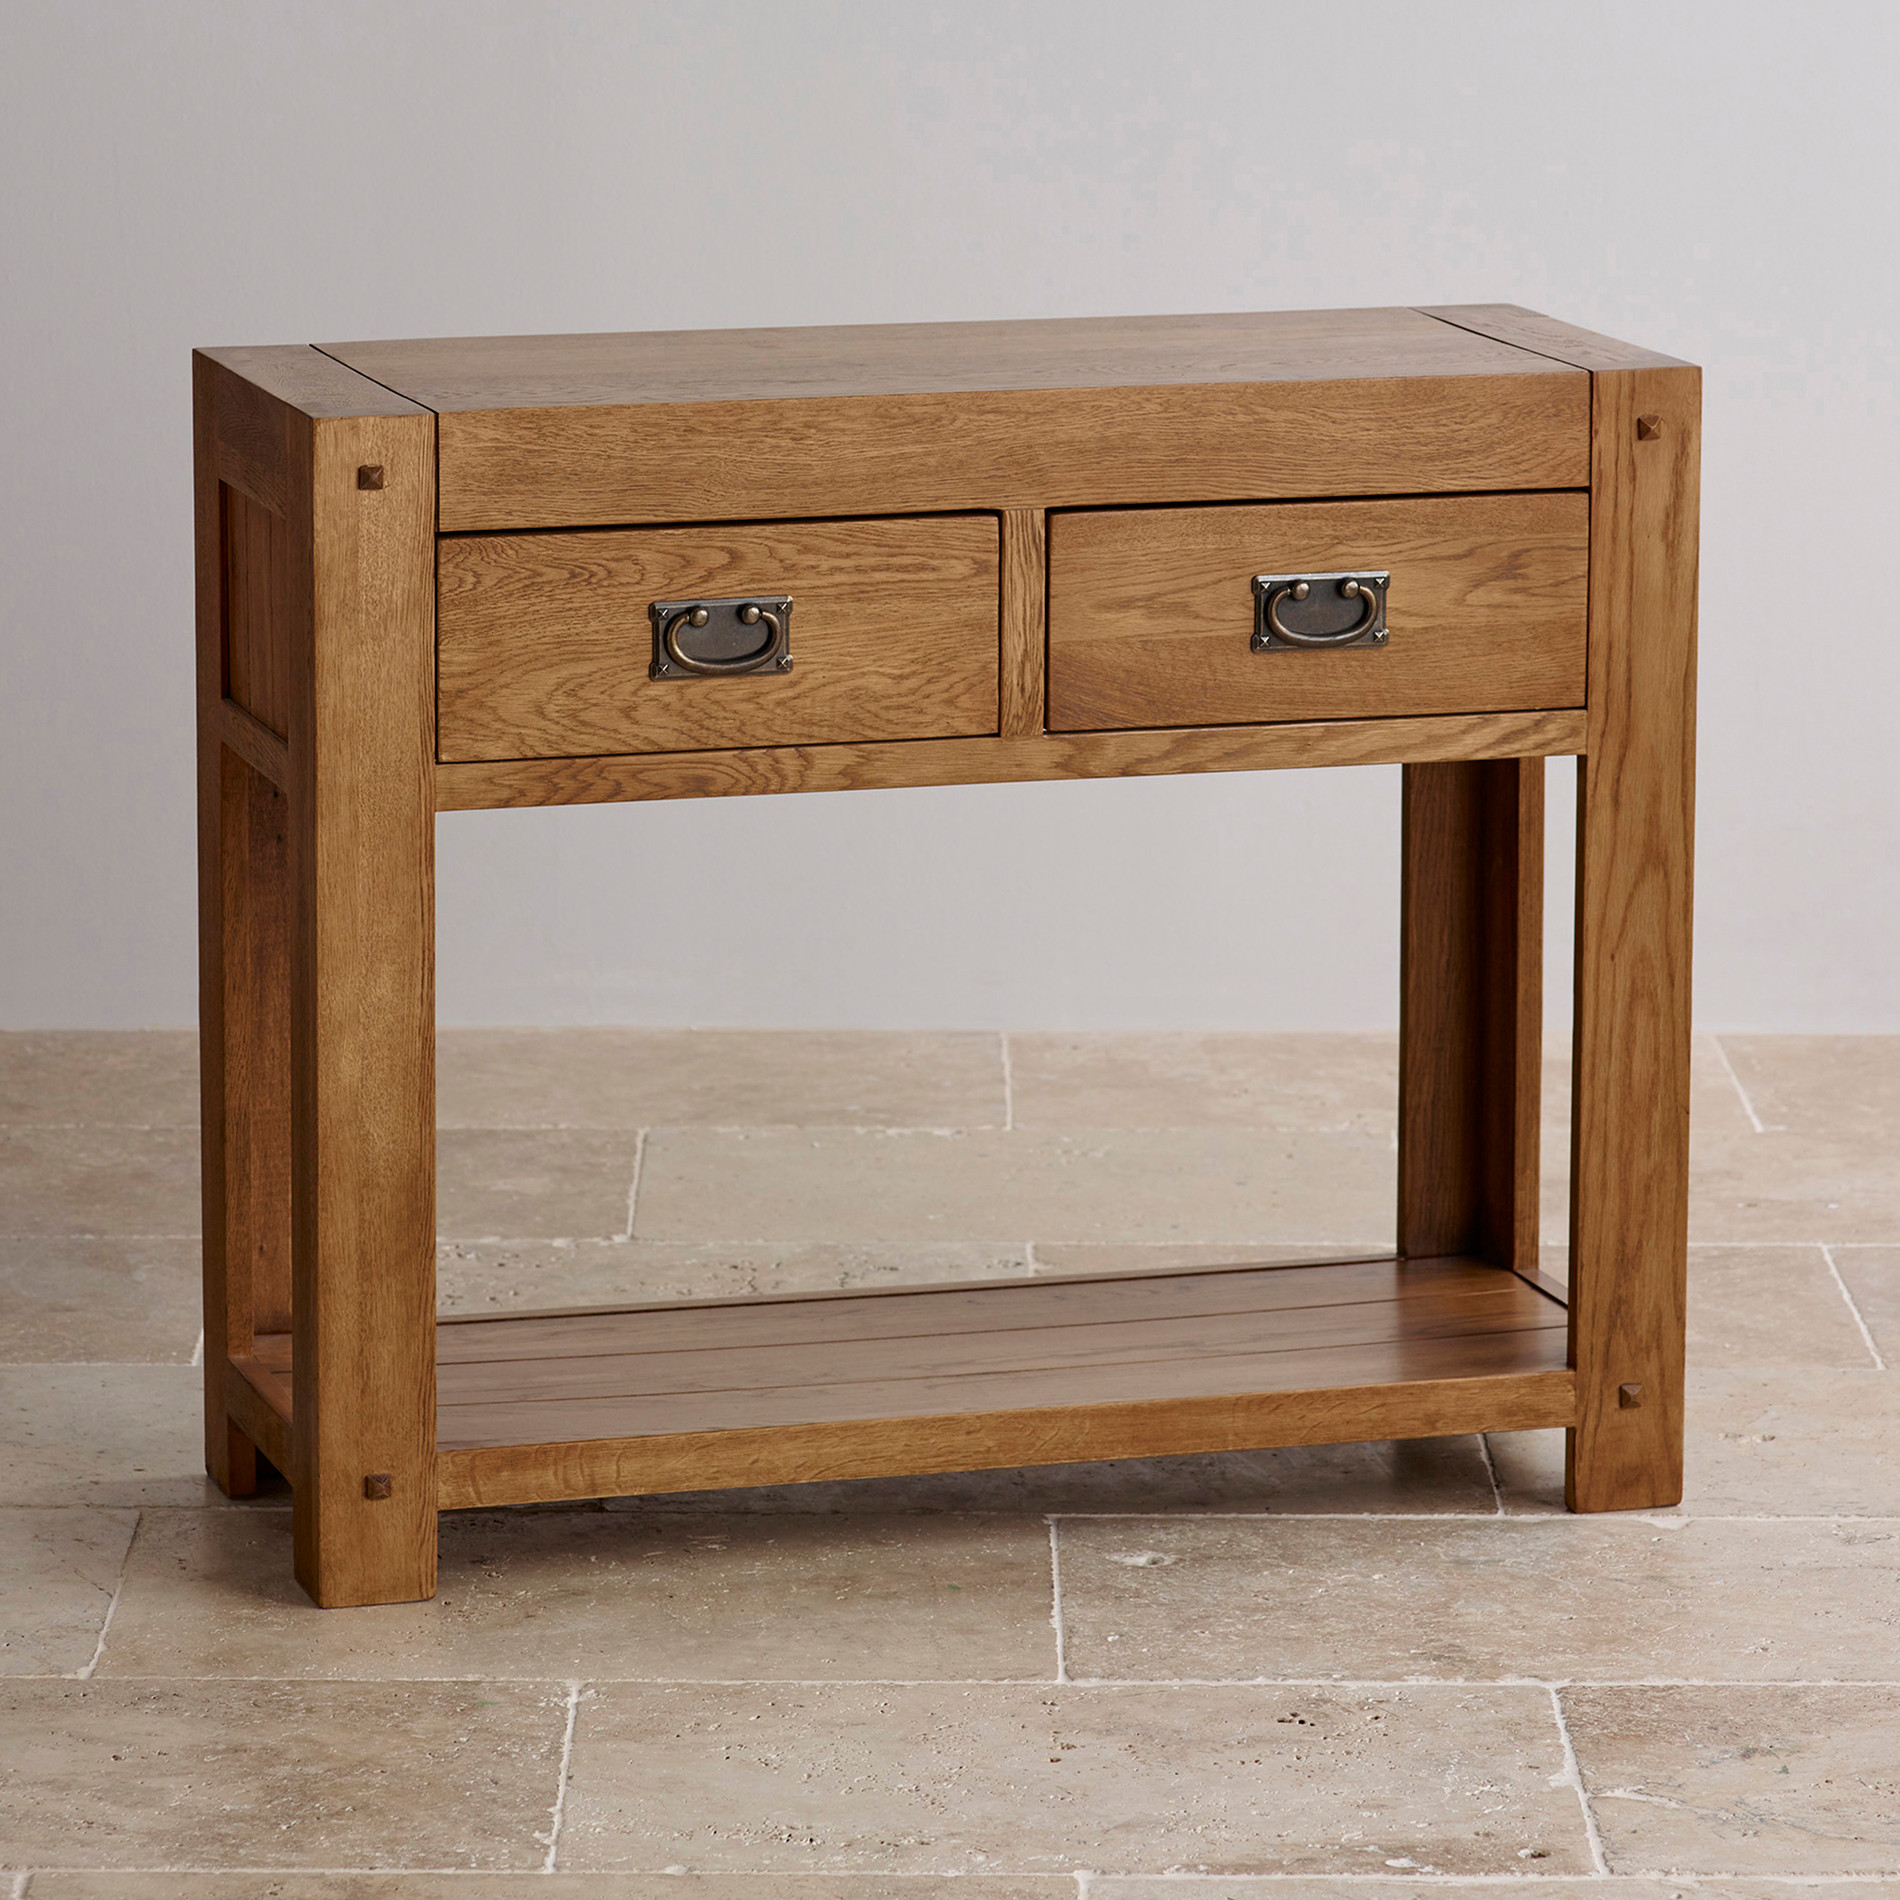 Quercus rustic solid oak console table by oak furniture land for Solid oak furniture